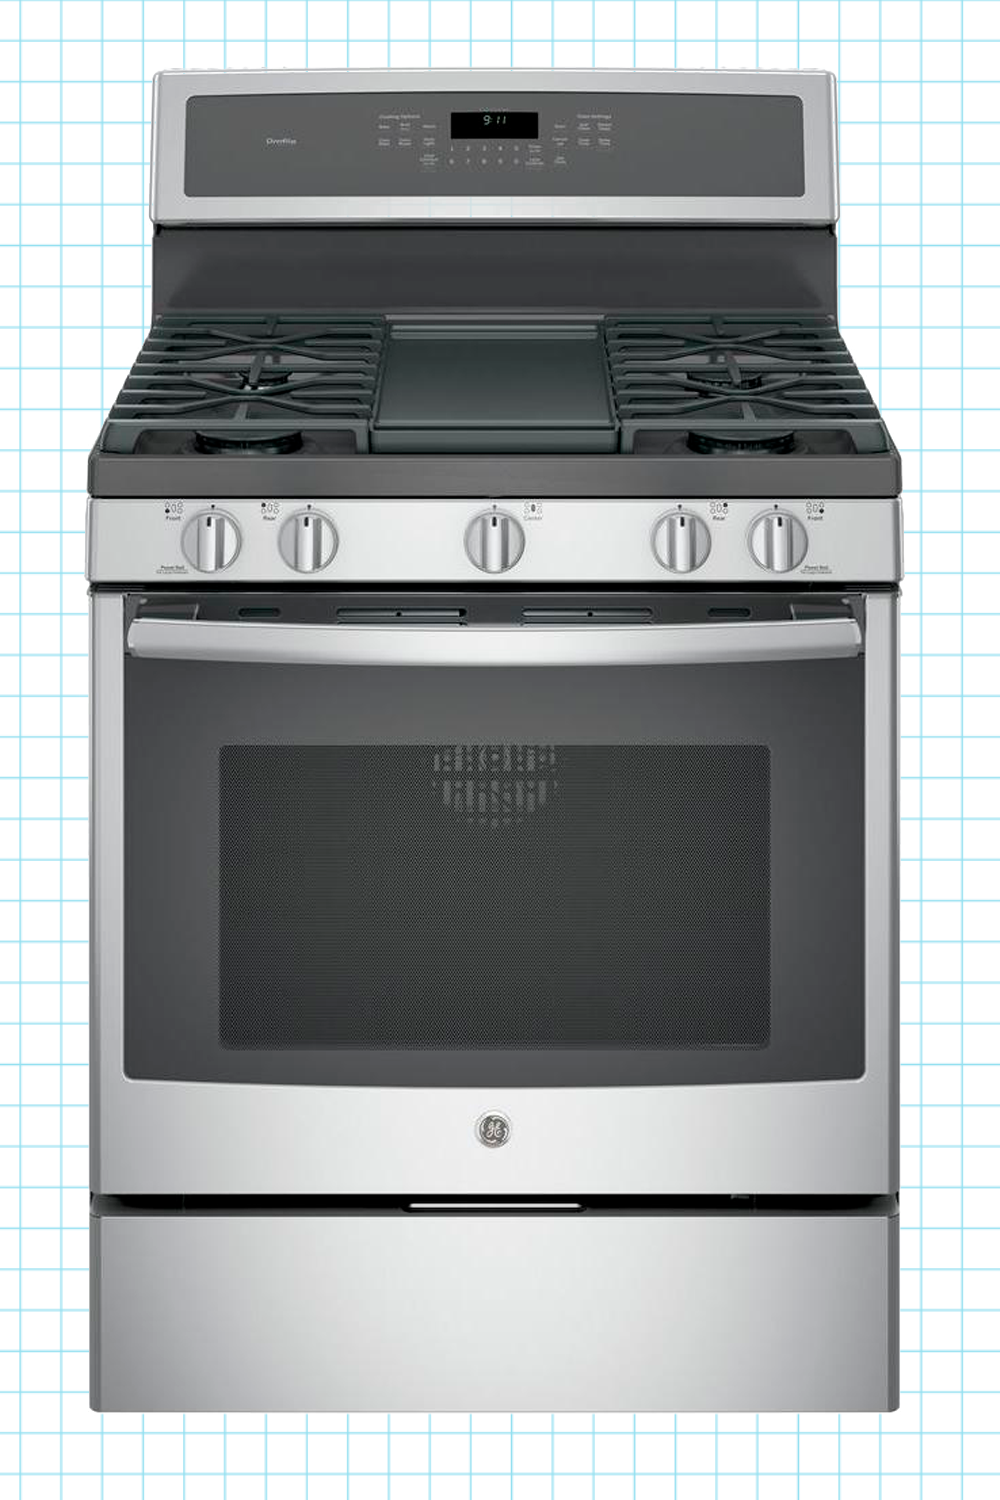 1f8c131d416 6 Best Gas Range Stove Reviews 2019 - Top Rated Gas Ranges